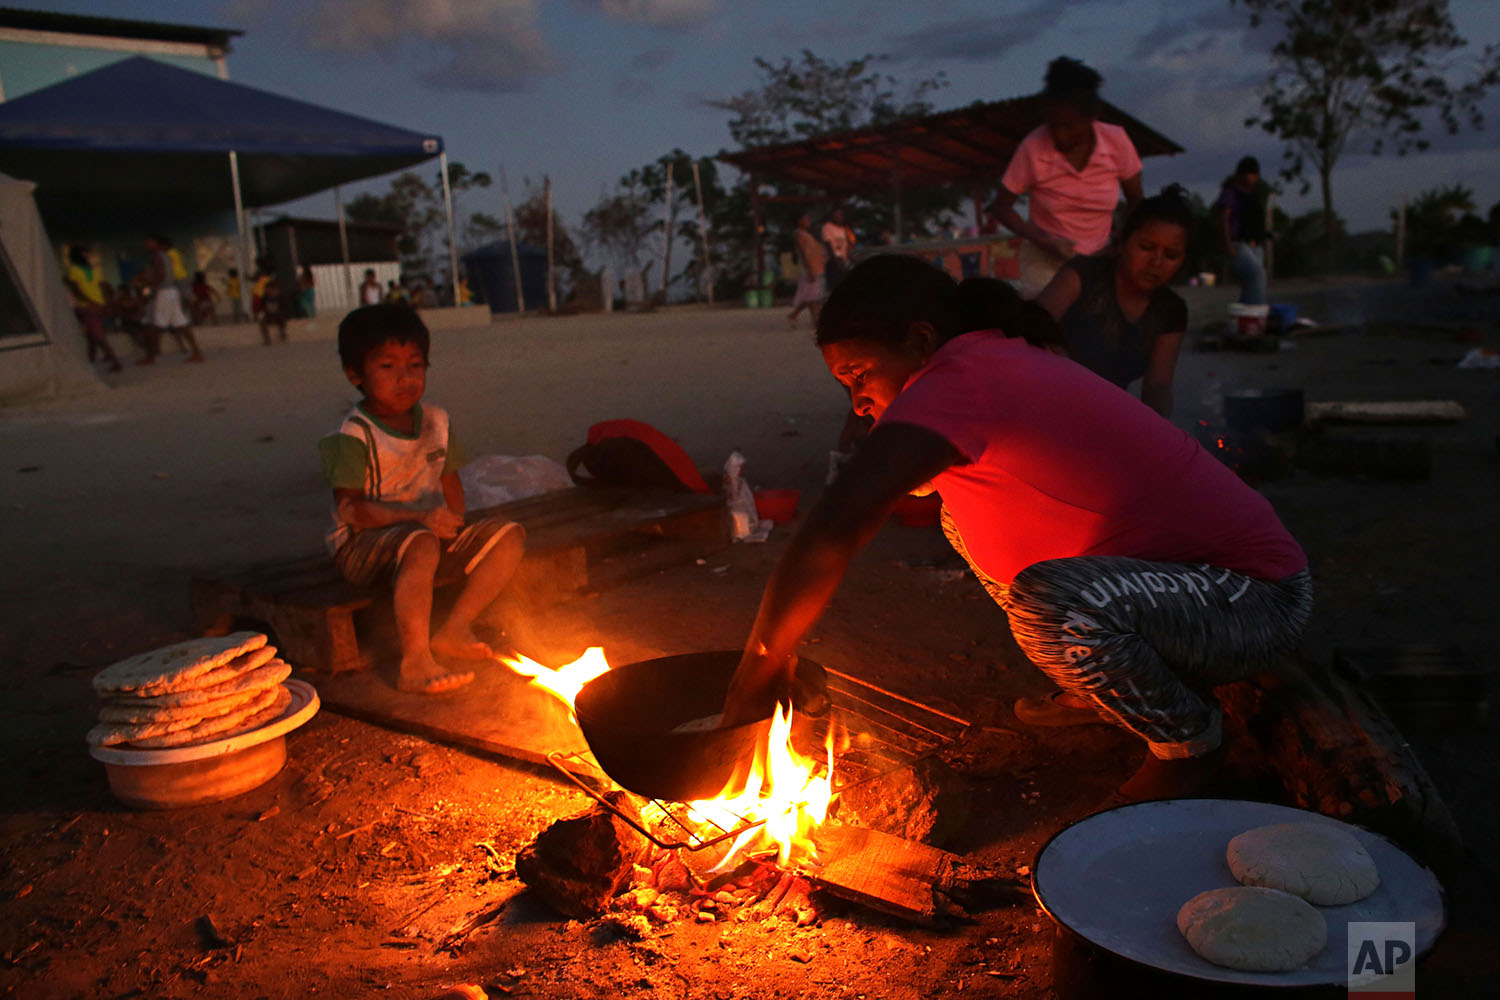 In this March 10, 2018 photo, a Warao woman from Venezuela, cooks bread over a fire in the outdoor area of a shelter, in Pacaraima, Brazil. (AP Photo/Eraldo Peres)